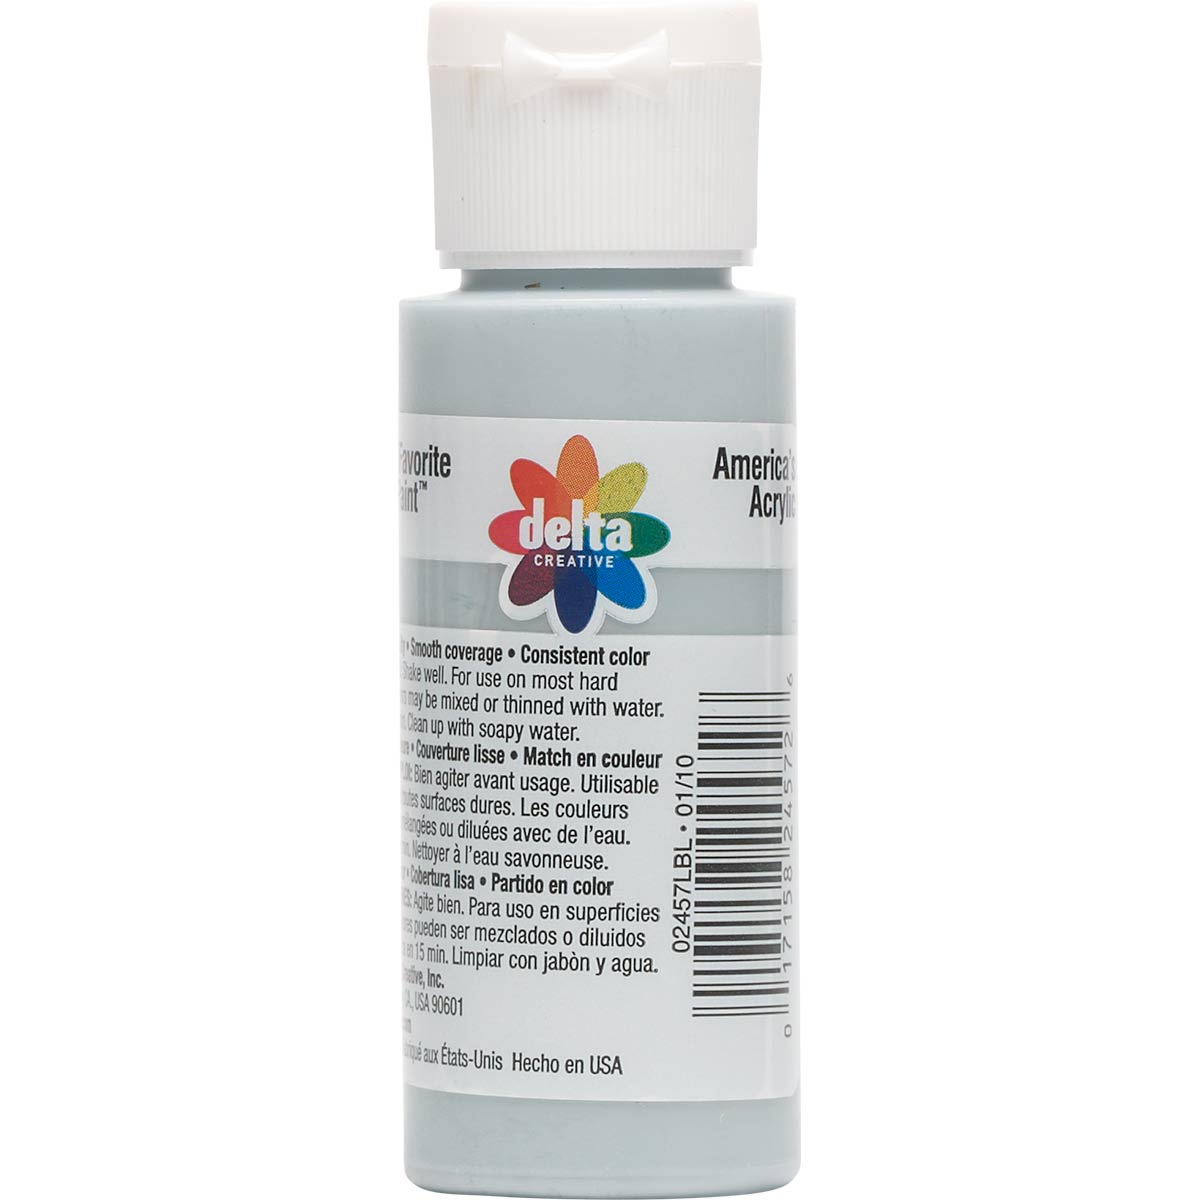 Delta Ceramcoat ® Acrylic Paint - Dolphin Grey, 2 oz.